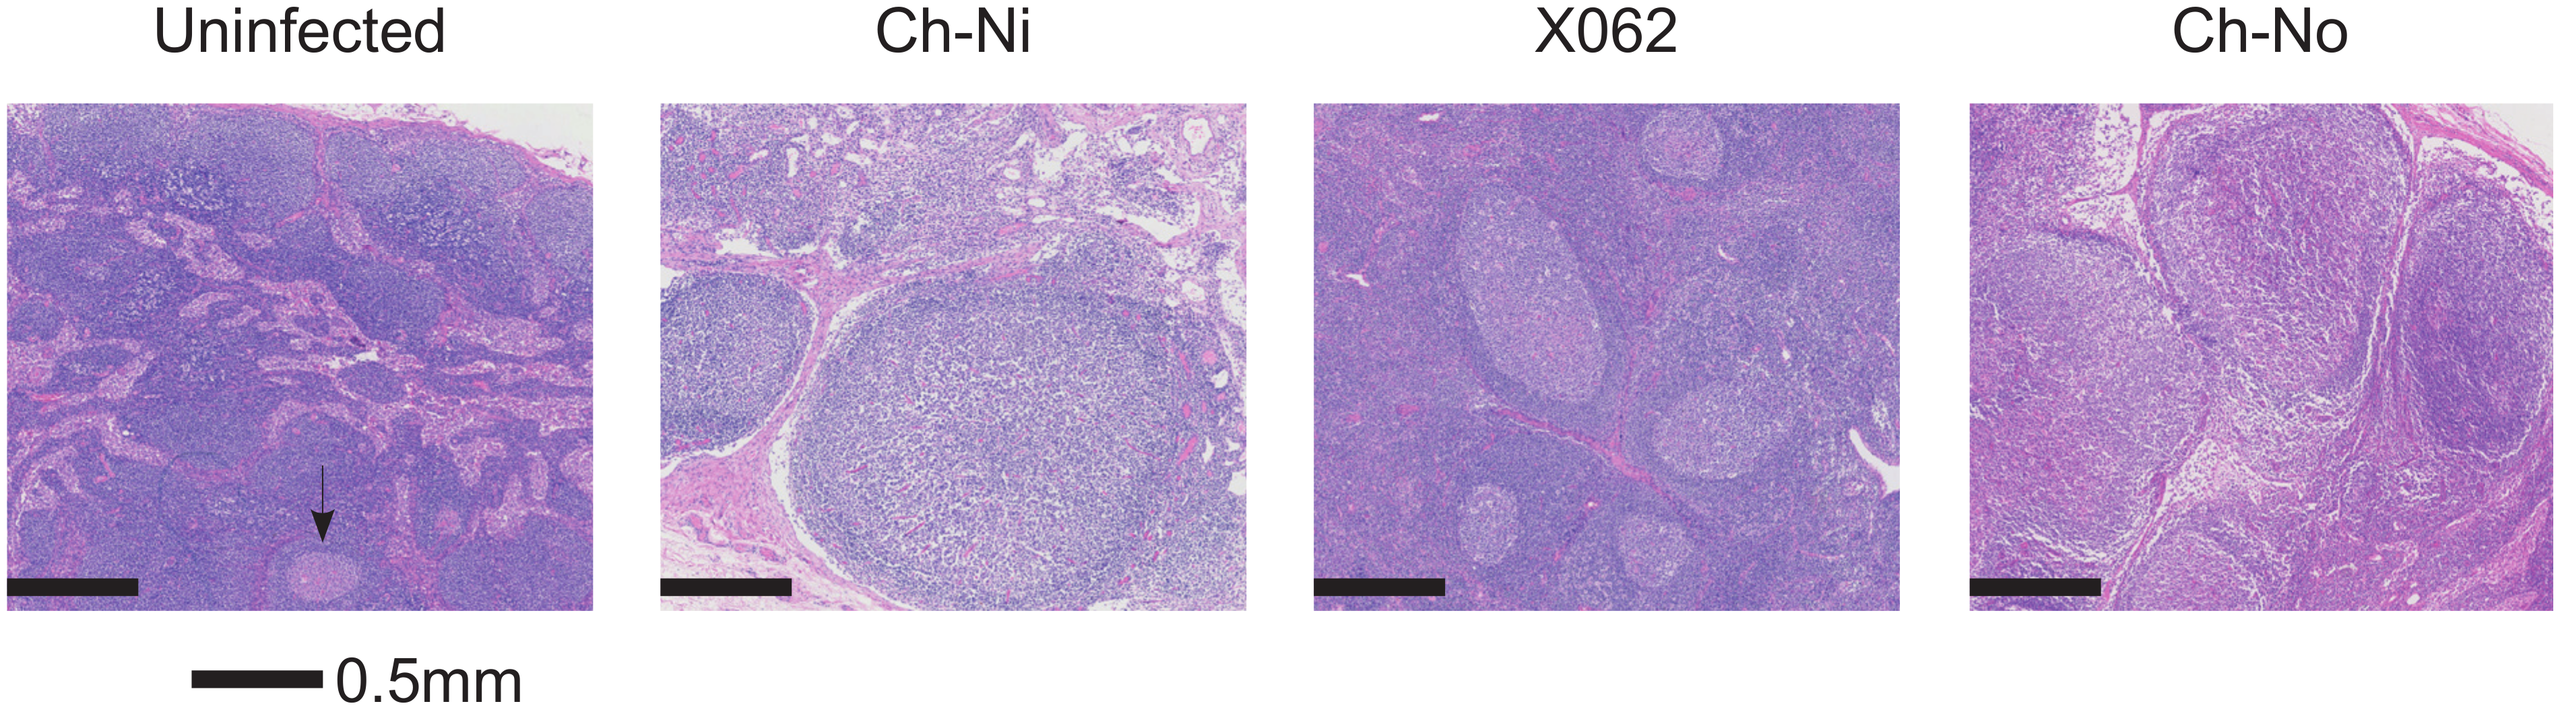 Lymphoid hyperplasia in SIVcpz infected chimpanzees.